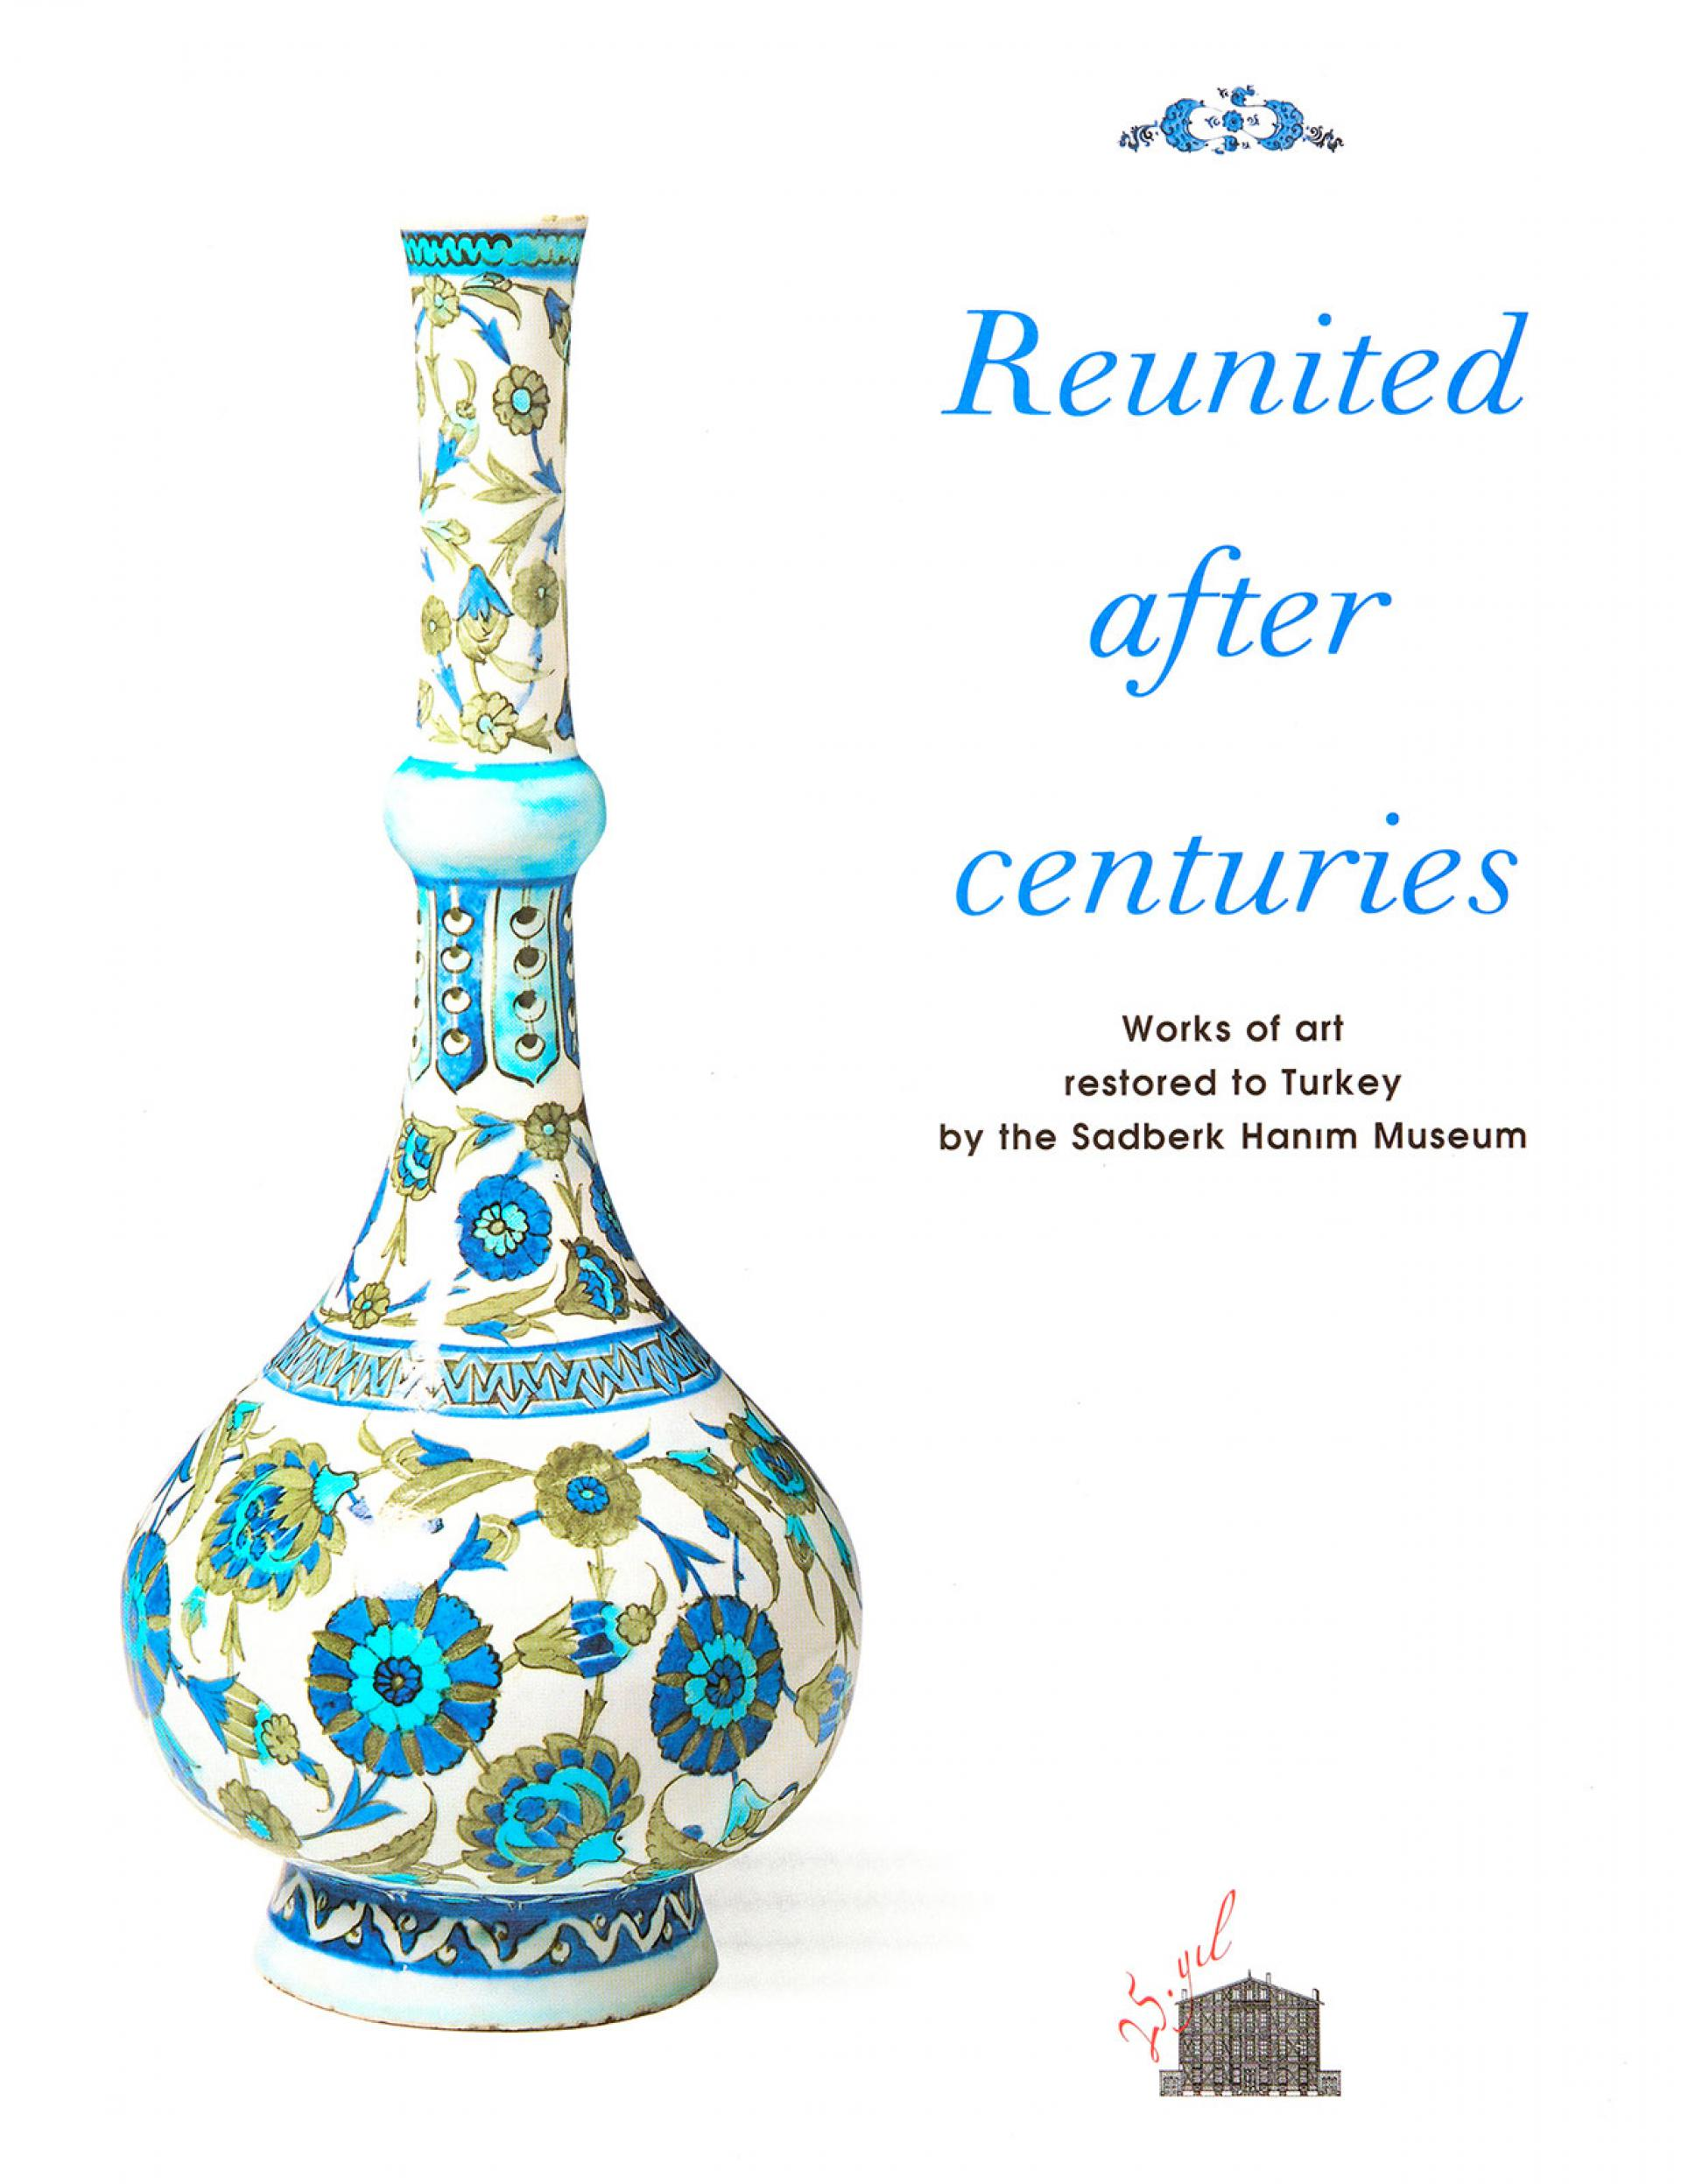 Reunited After Centuries - Works of Art Restored to Turkey by the Sadberk Hanım Museum - BOOKS - Sadberk Hanım Museum